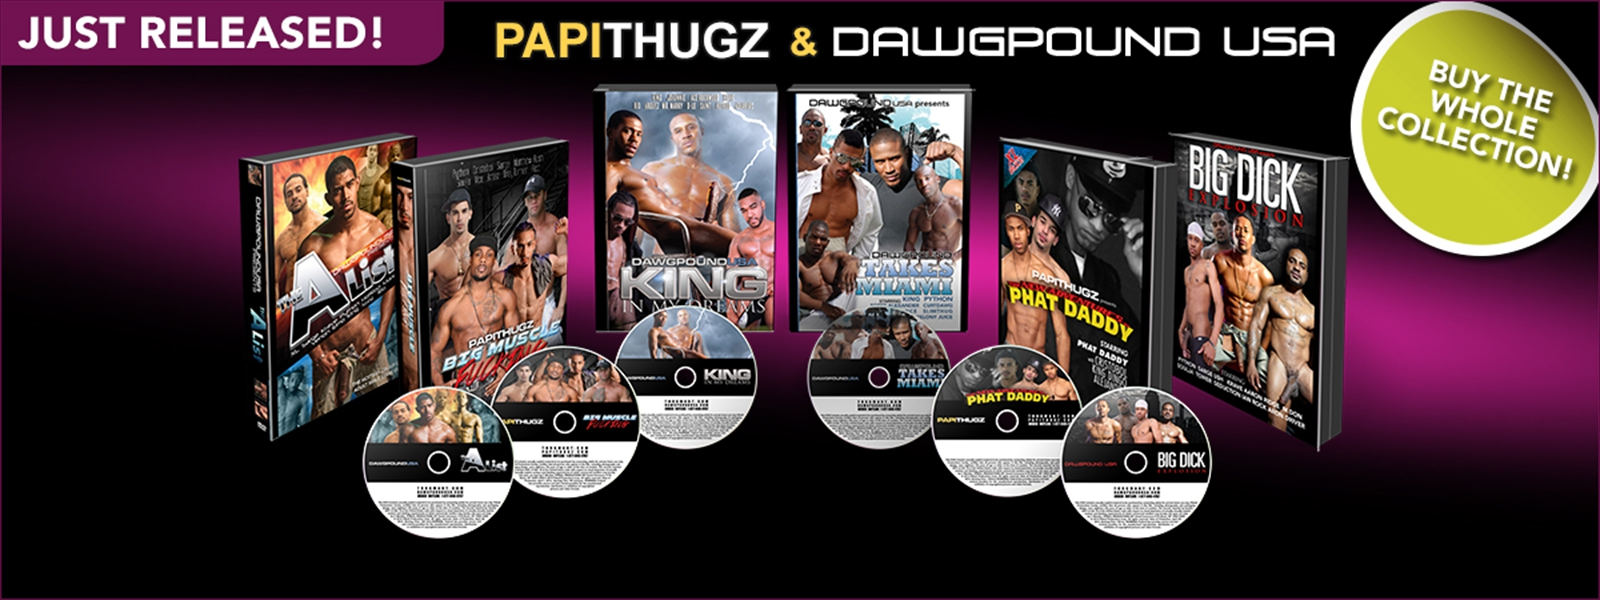 DAWGPOUND - PAPITHUGZ COLLECTION